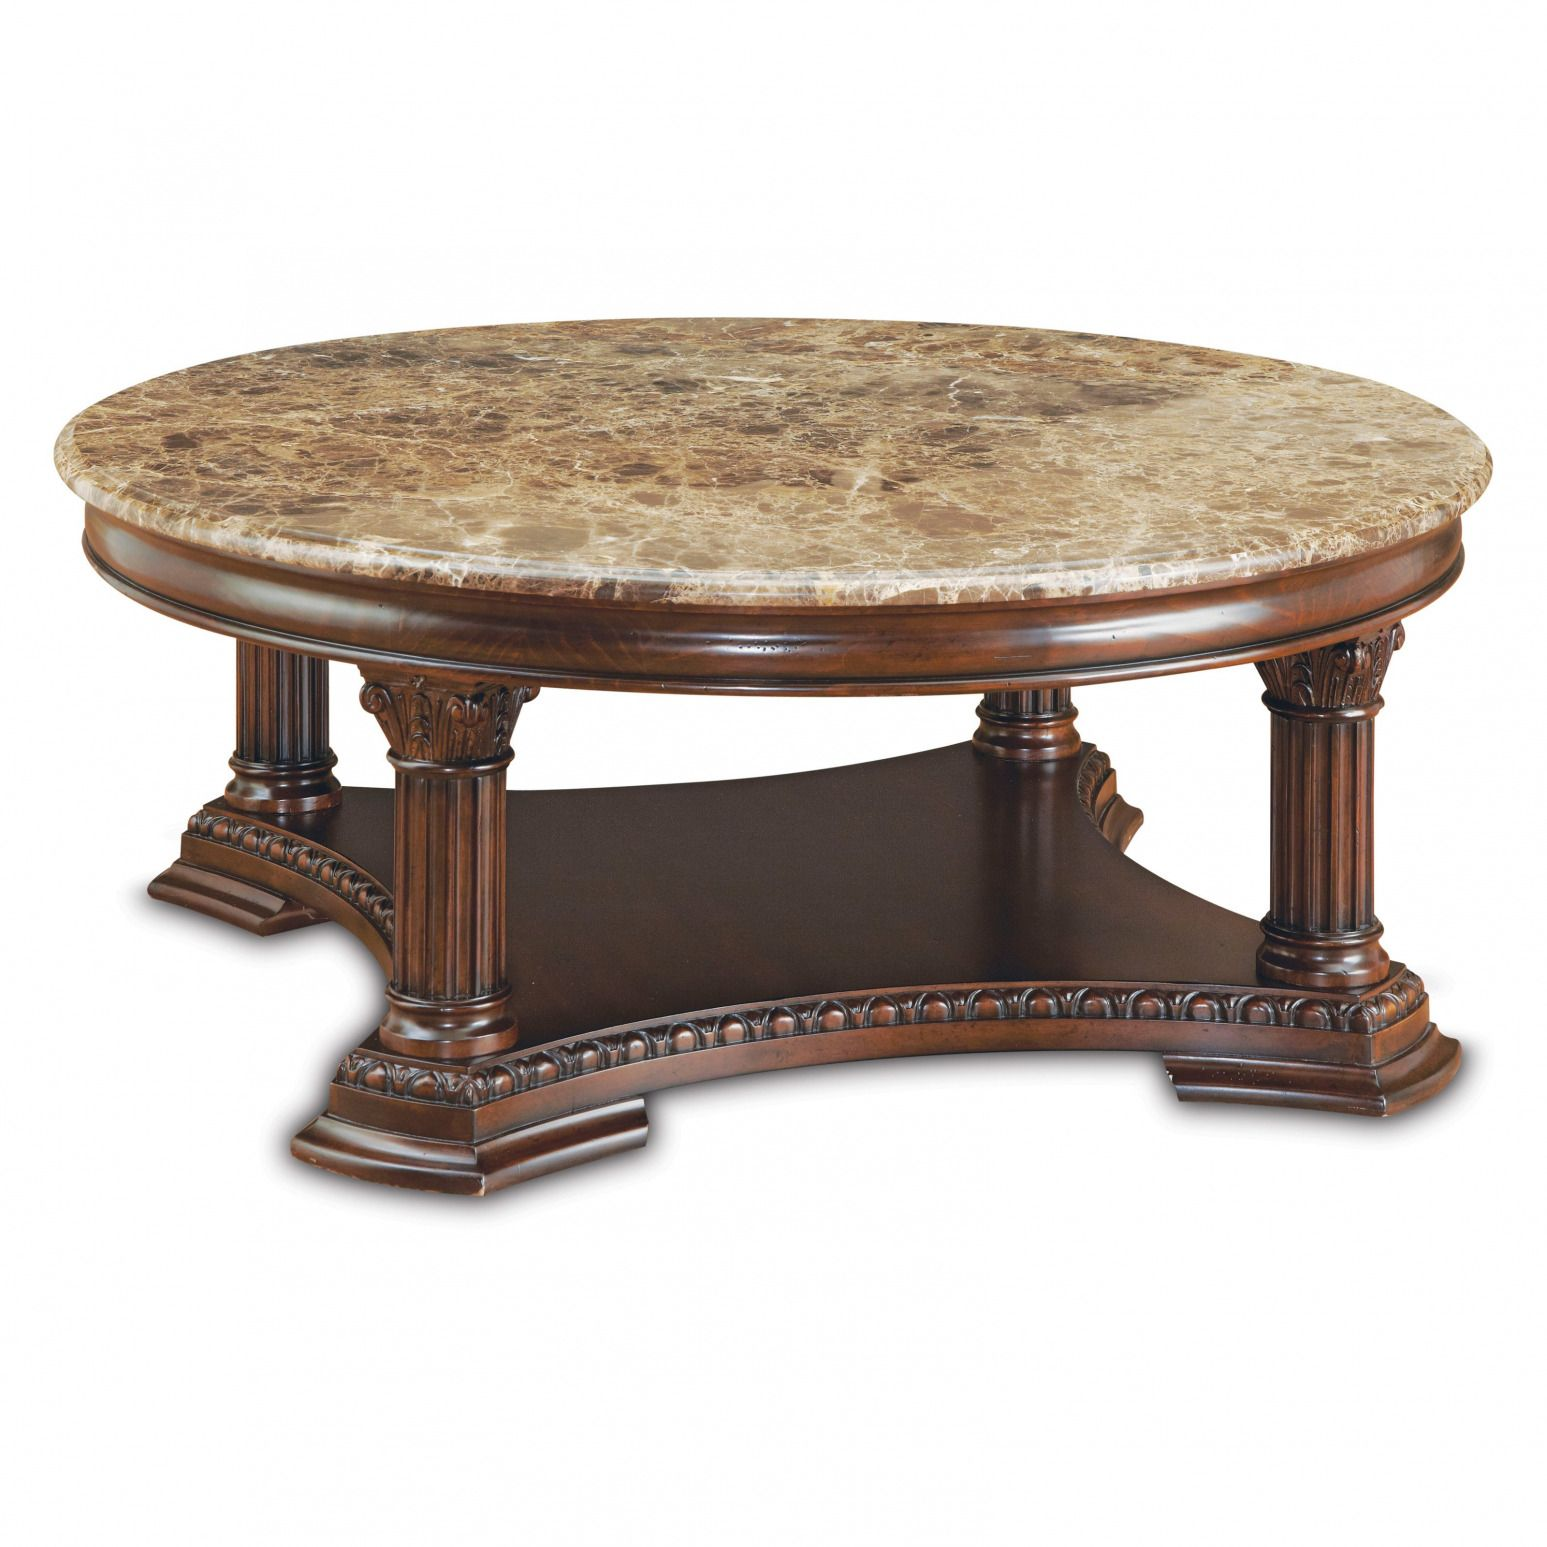 100 Round Granite Table Tops Best Quality Furniture Check More At Http Livelylighting Com Round Marble Top Coffee Table Granite Coffee Table Coffee Table